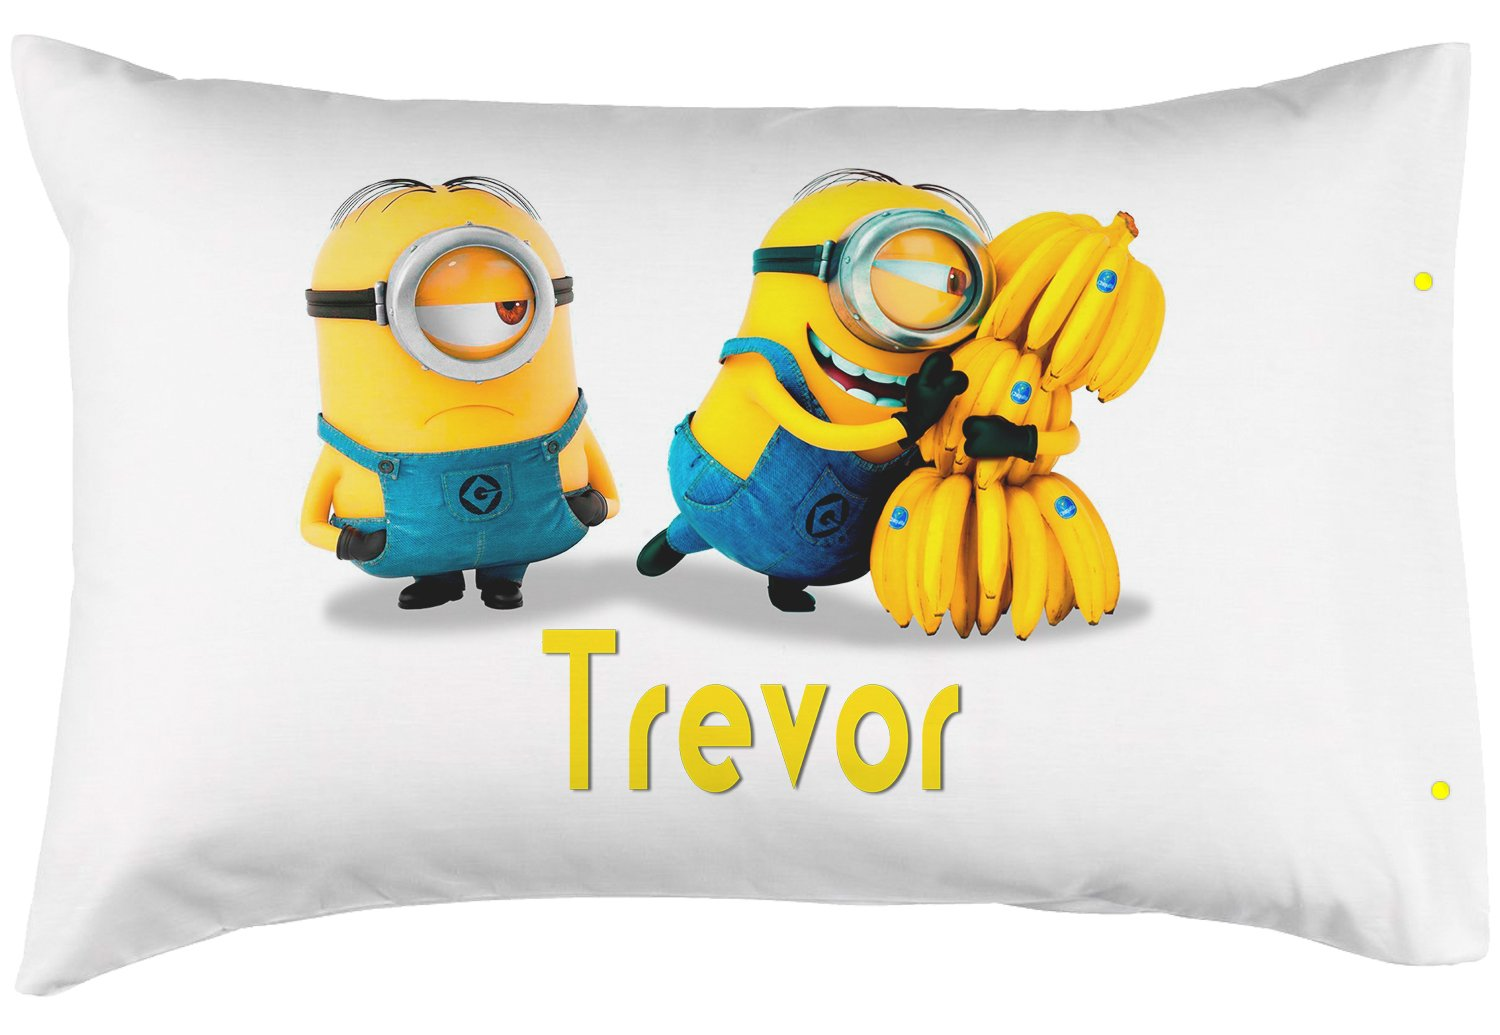 PersonalizedPillowcase Childrens Minions 100/% Super Soft Microfiber! Perfect Custom Gift for Children of All Ages Standard 20X30 Customized with Your Childs Name!